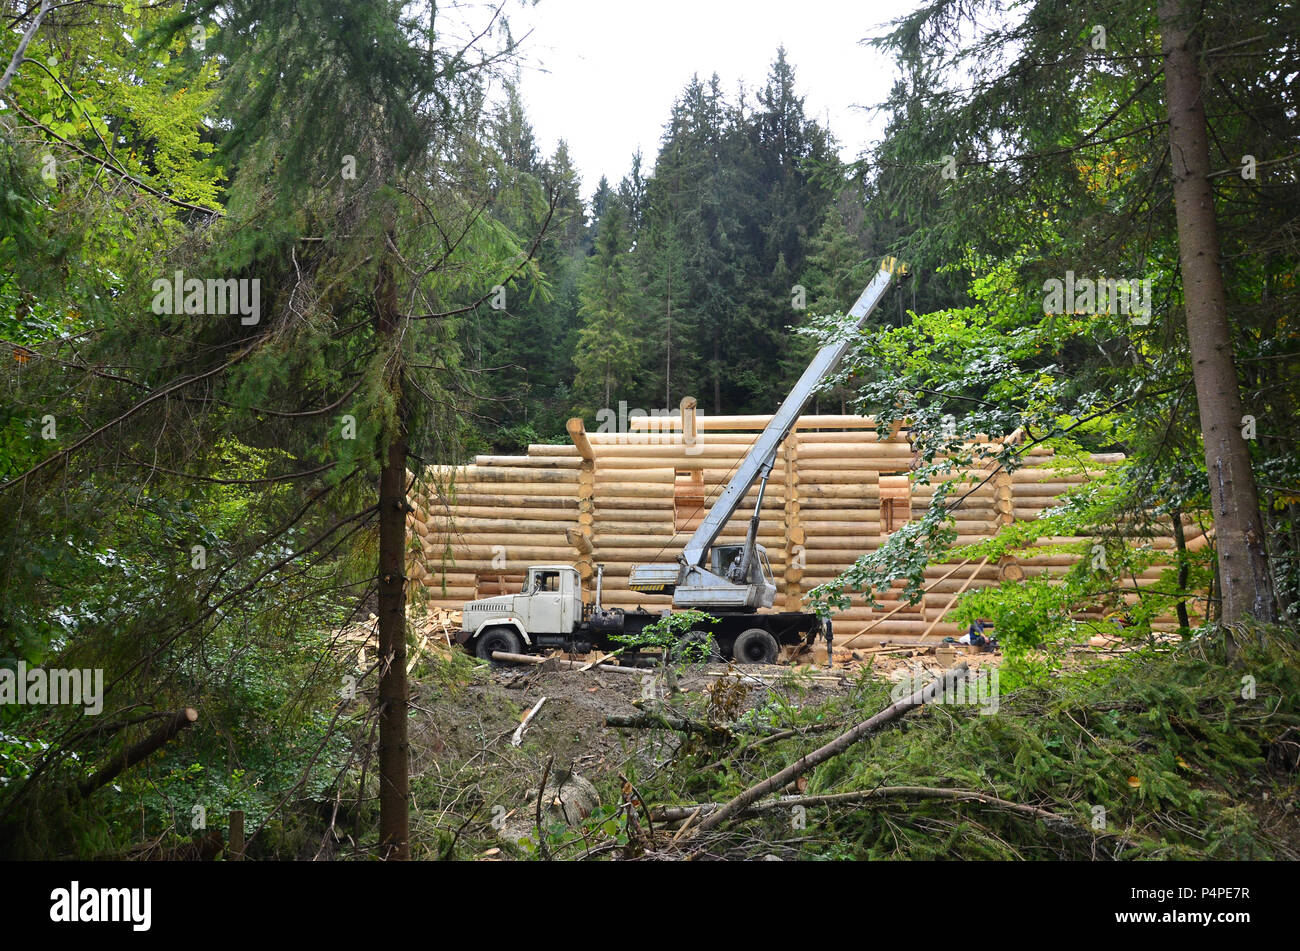 The process of building a wooden house from wooden beams of cylindrical shape. Crane in working condition - Stock Image